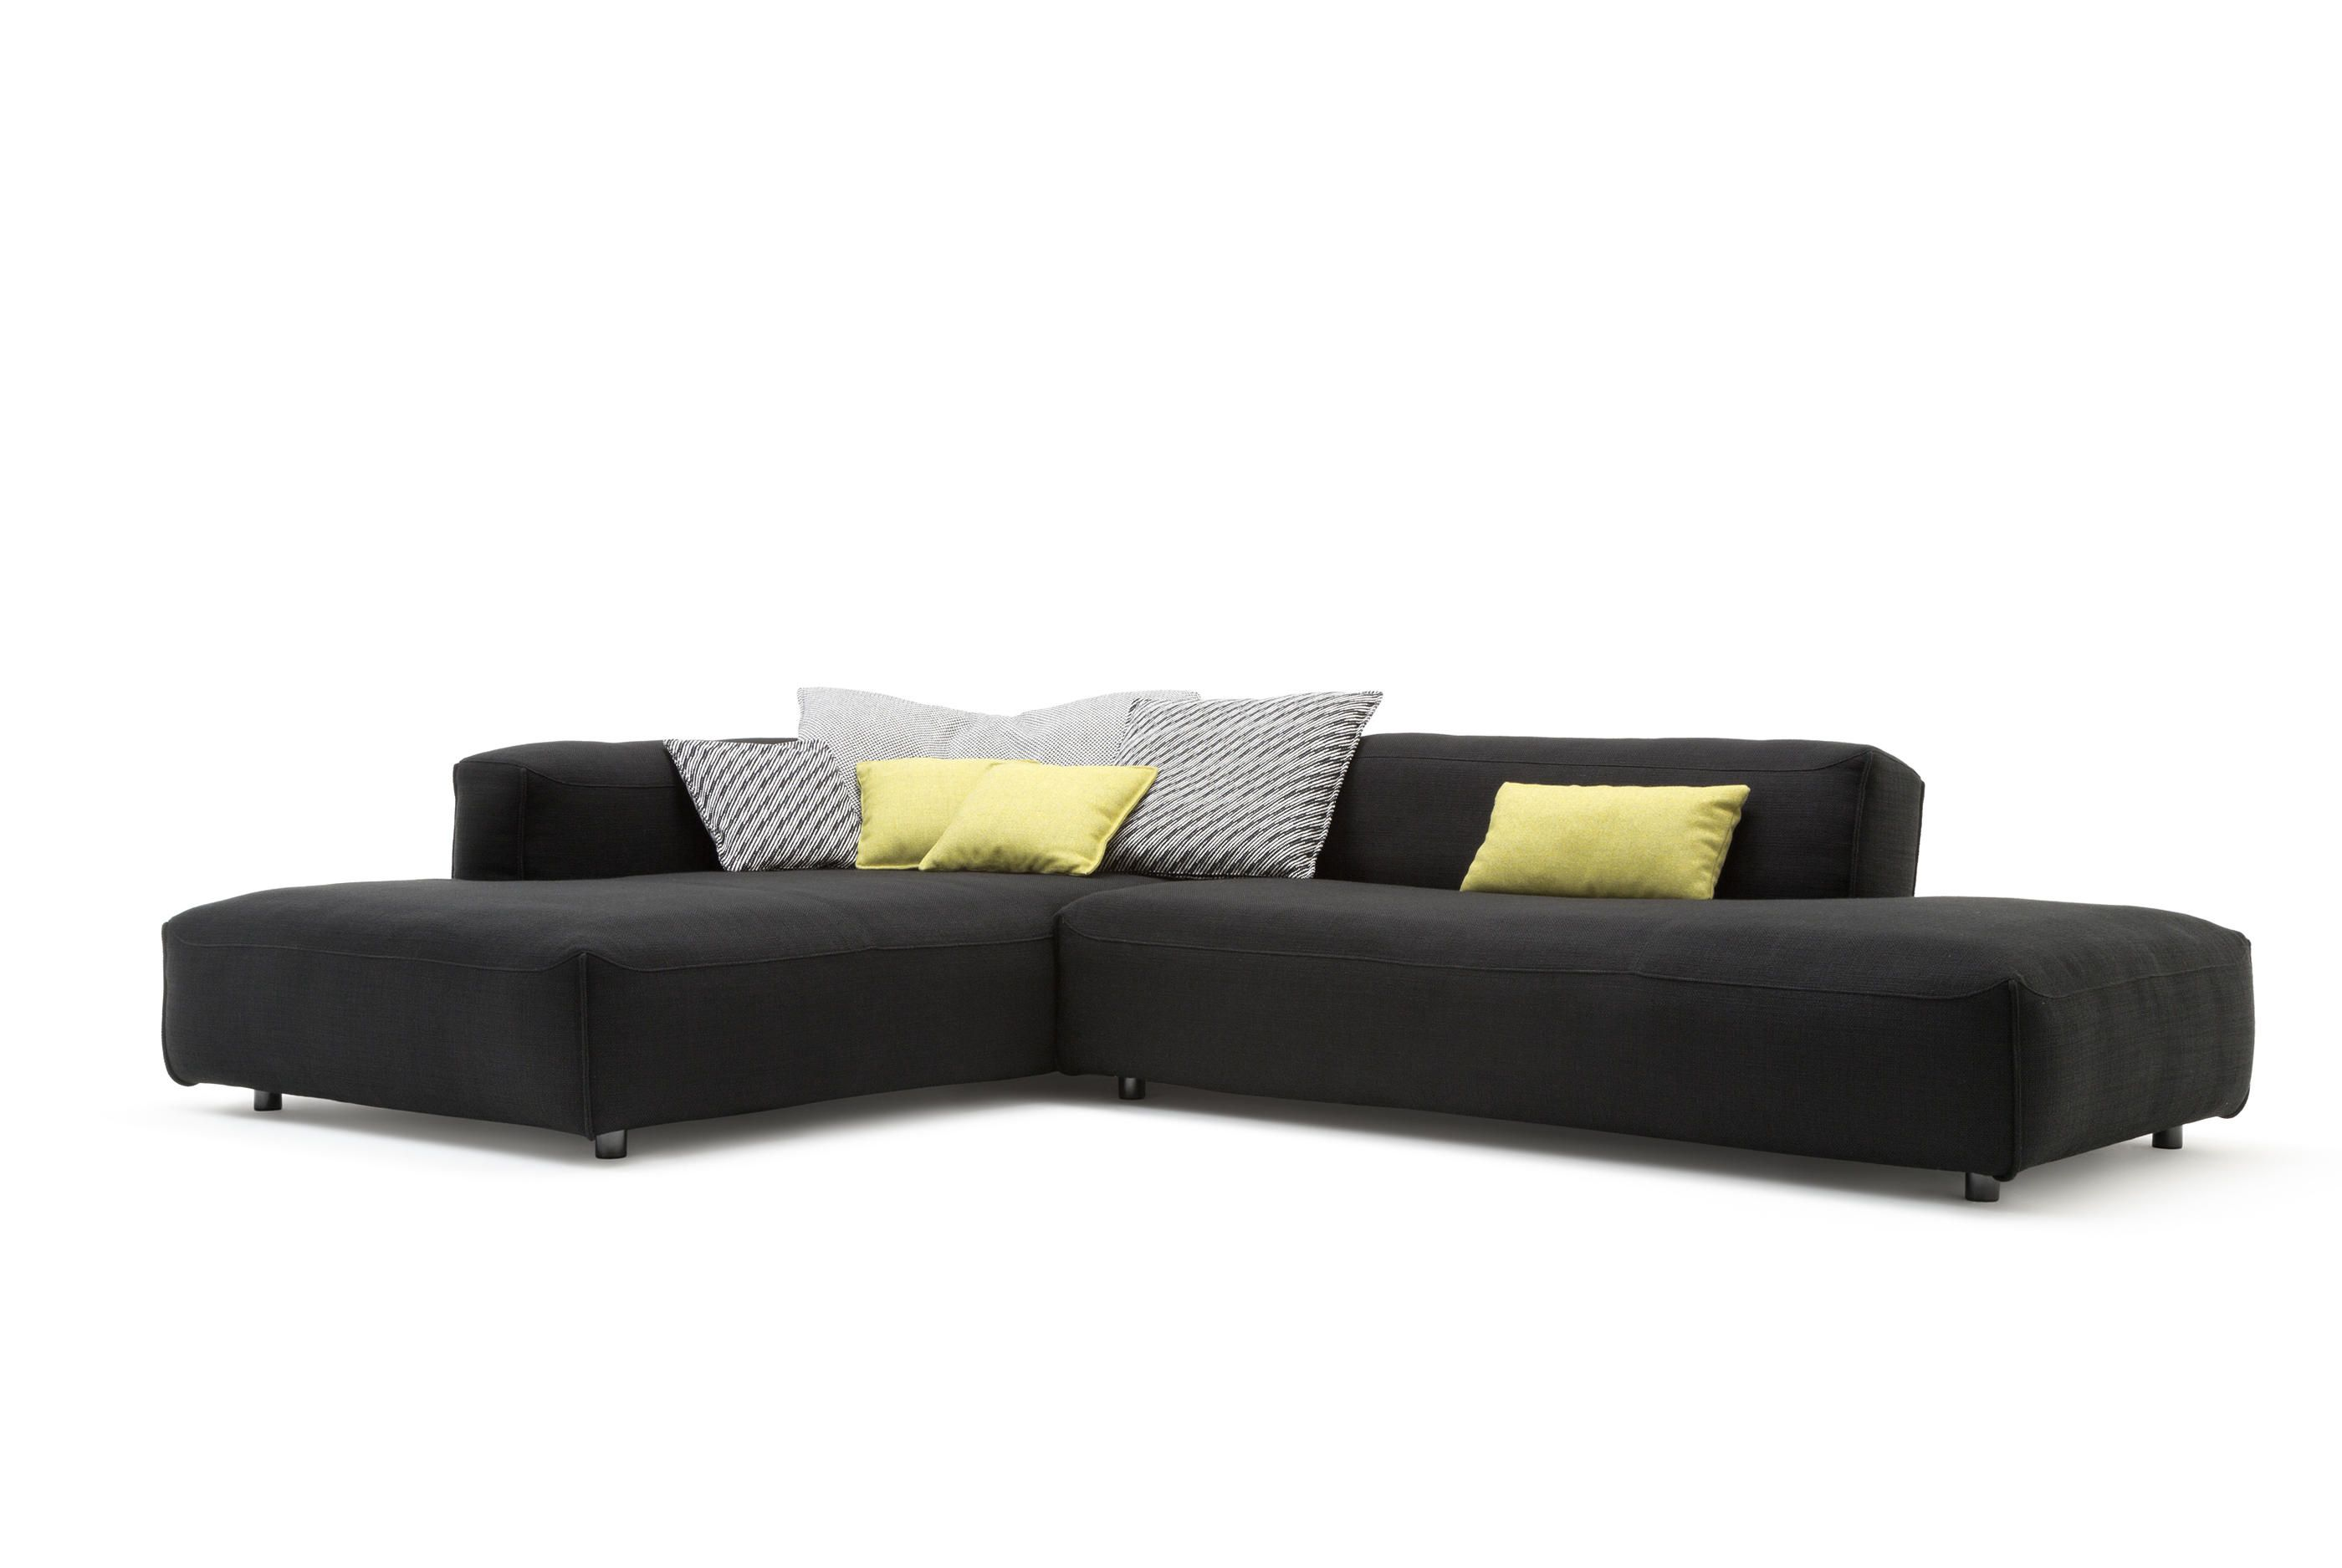 Rolf Benz Eckcouch Rolf Benz Sofa Trendy Click Here To See A Larger Picture With